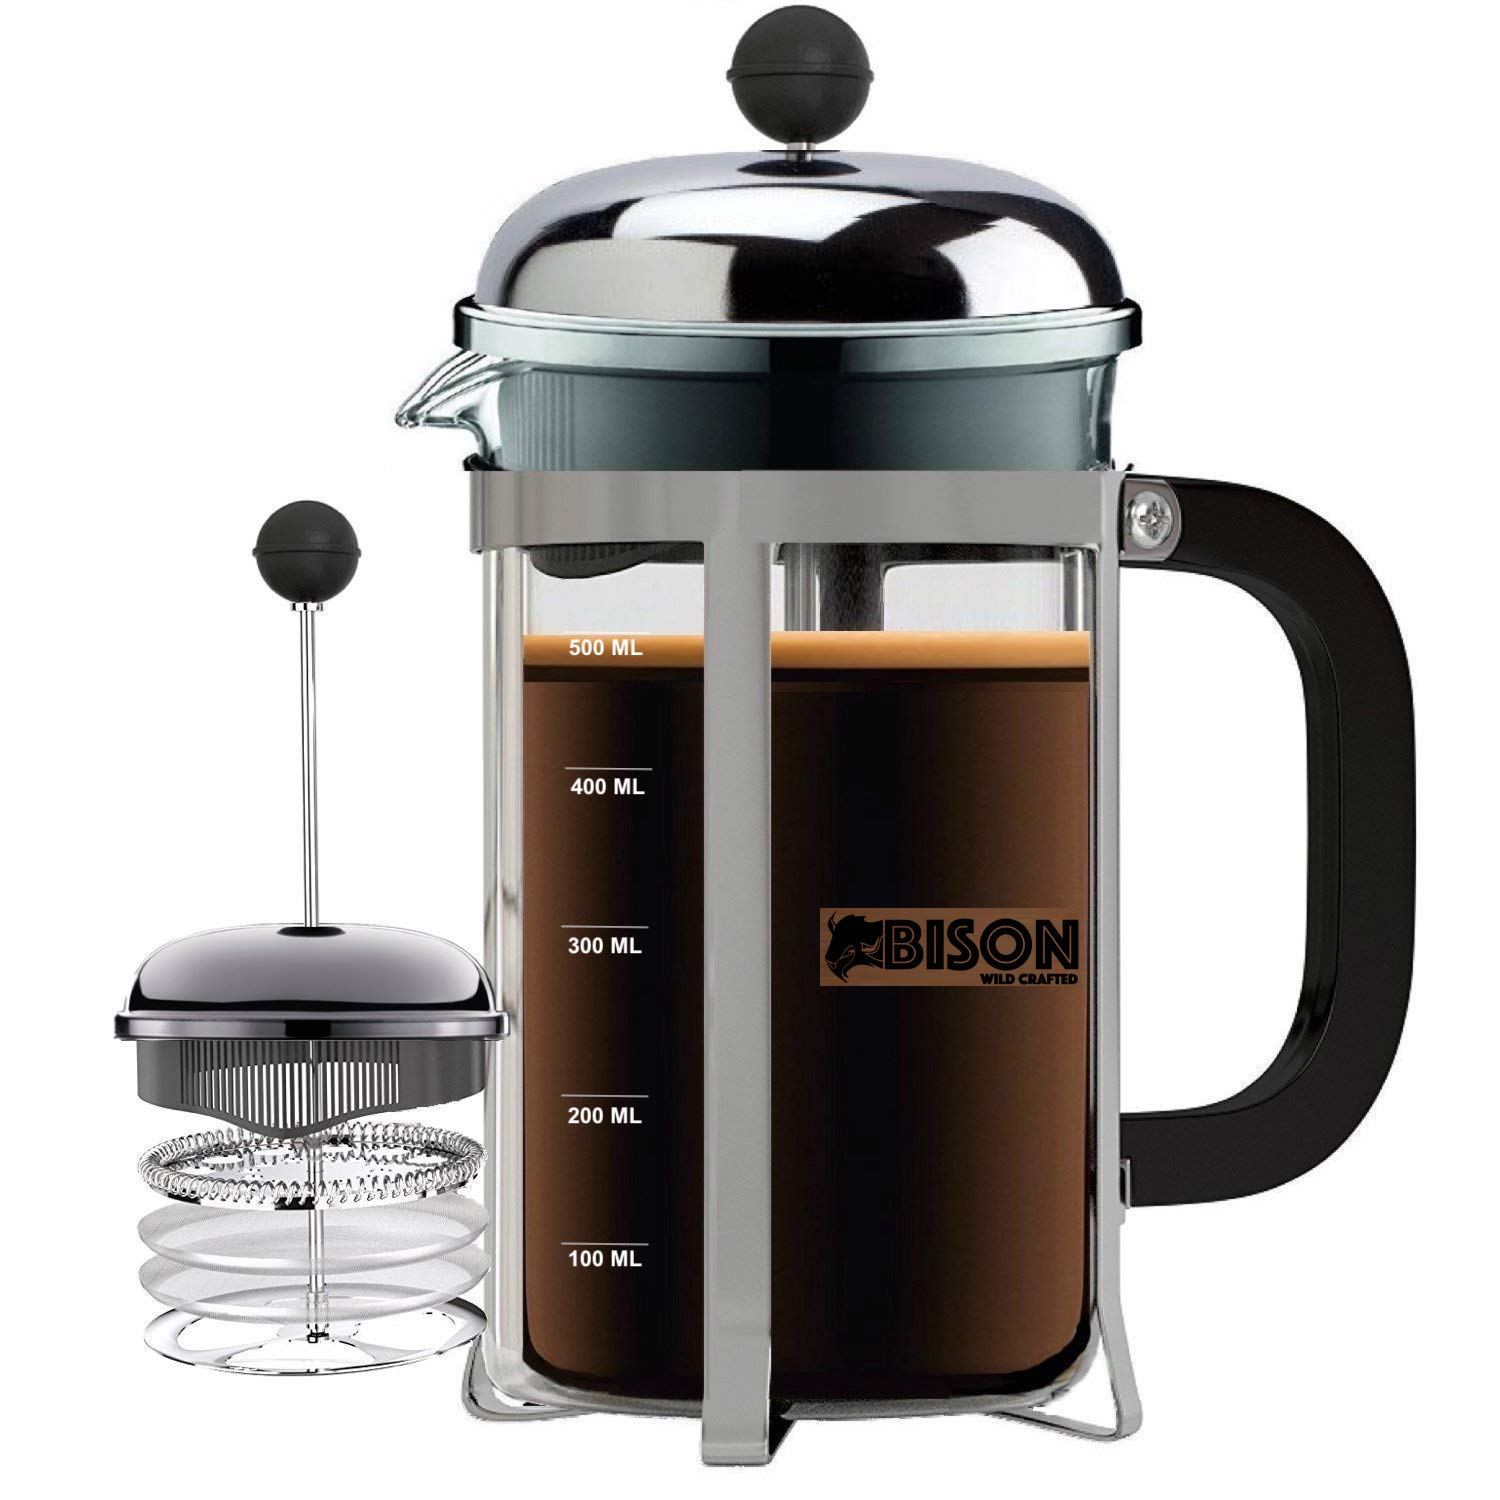 Bison International Stainless Steel Press Coffee/Tea Maker with 4 Level Filtration Borosilicate Glass with Extra Screen and Spoon (Black, 600 ml)